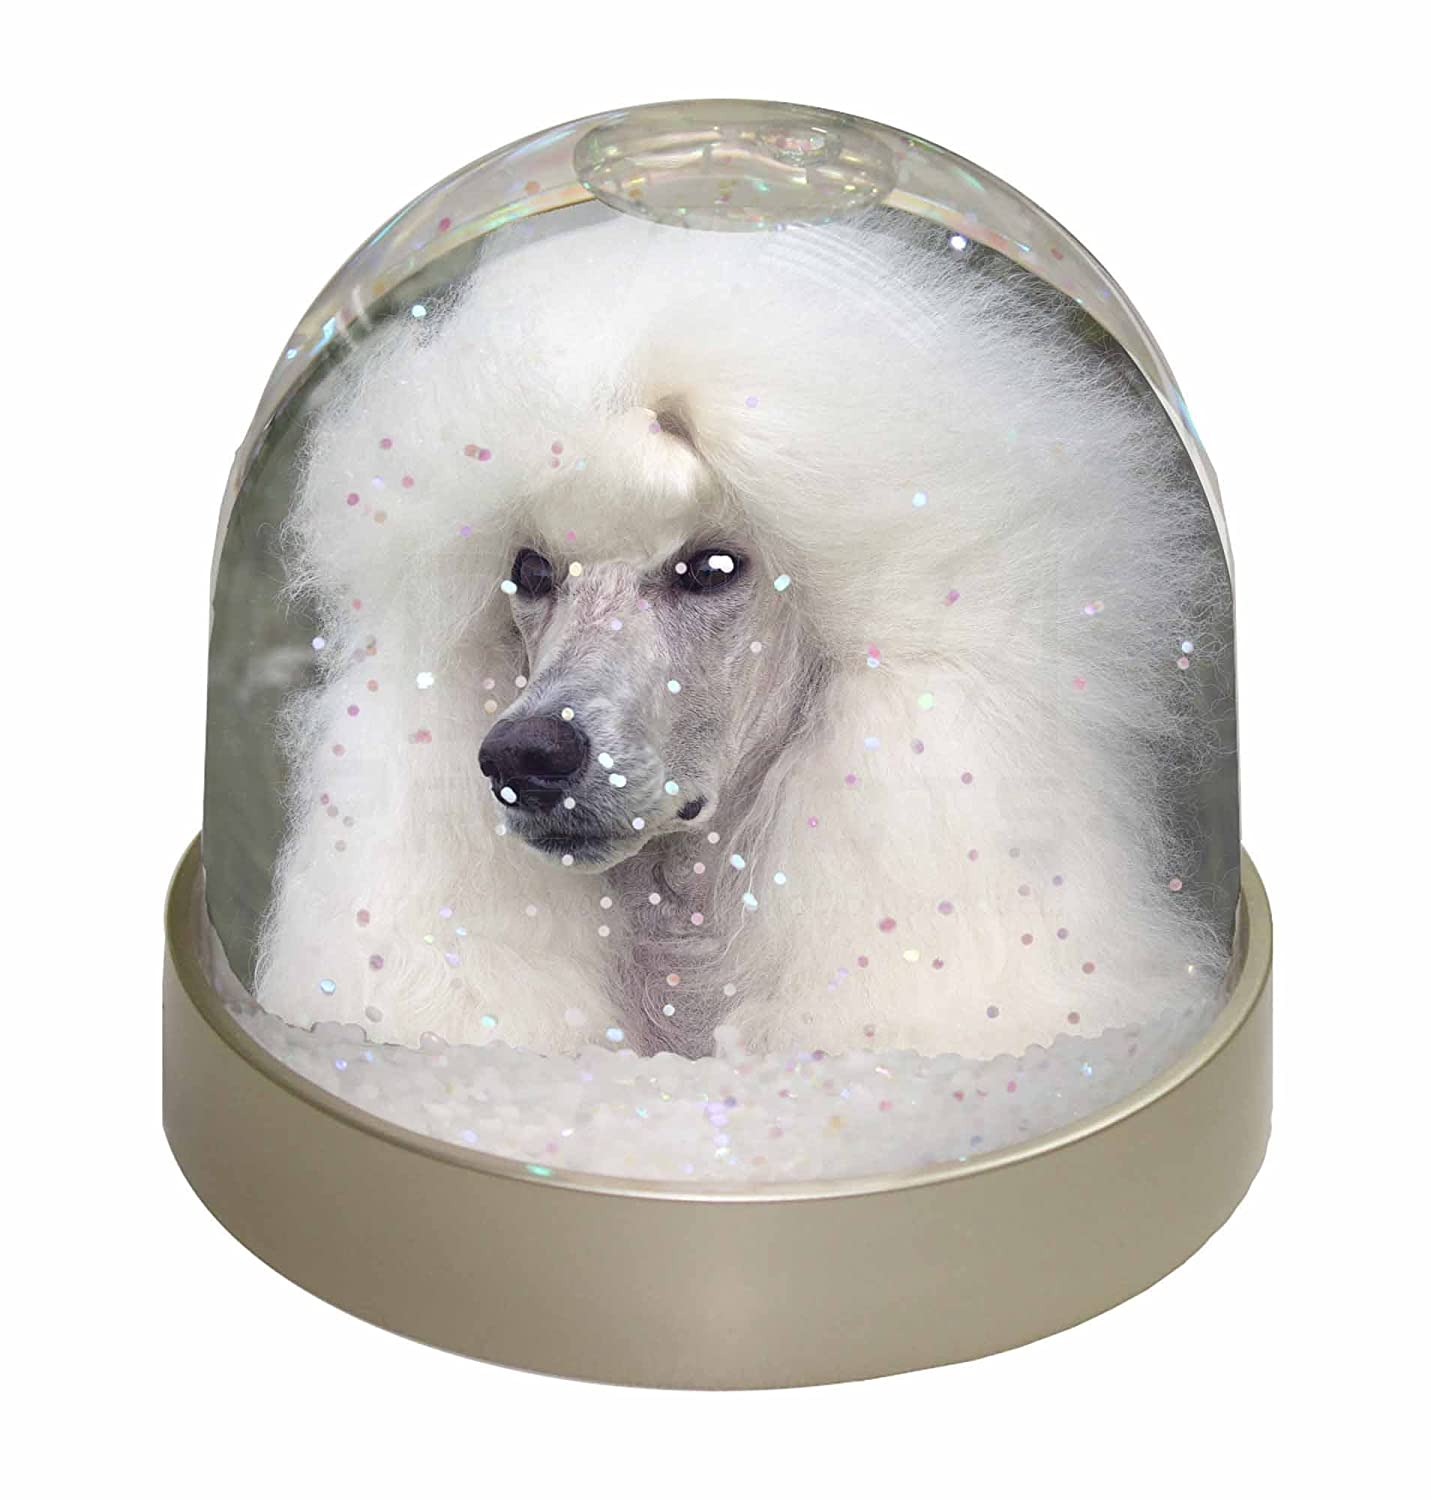 Advanta White Poodle Dog Snow Dome Globe Waterball Gift, Multi-Colour, 9.2 x 9.2 x 8 cm Advanta Products AD-POD5GL